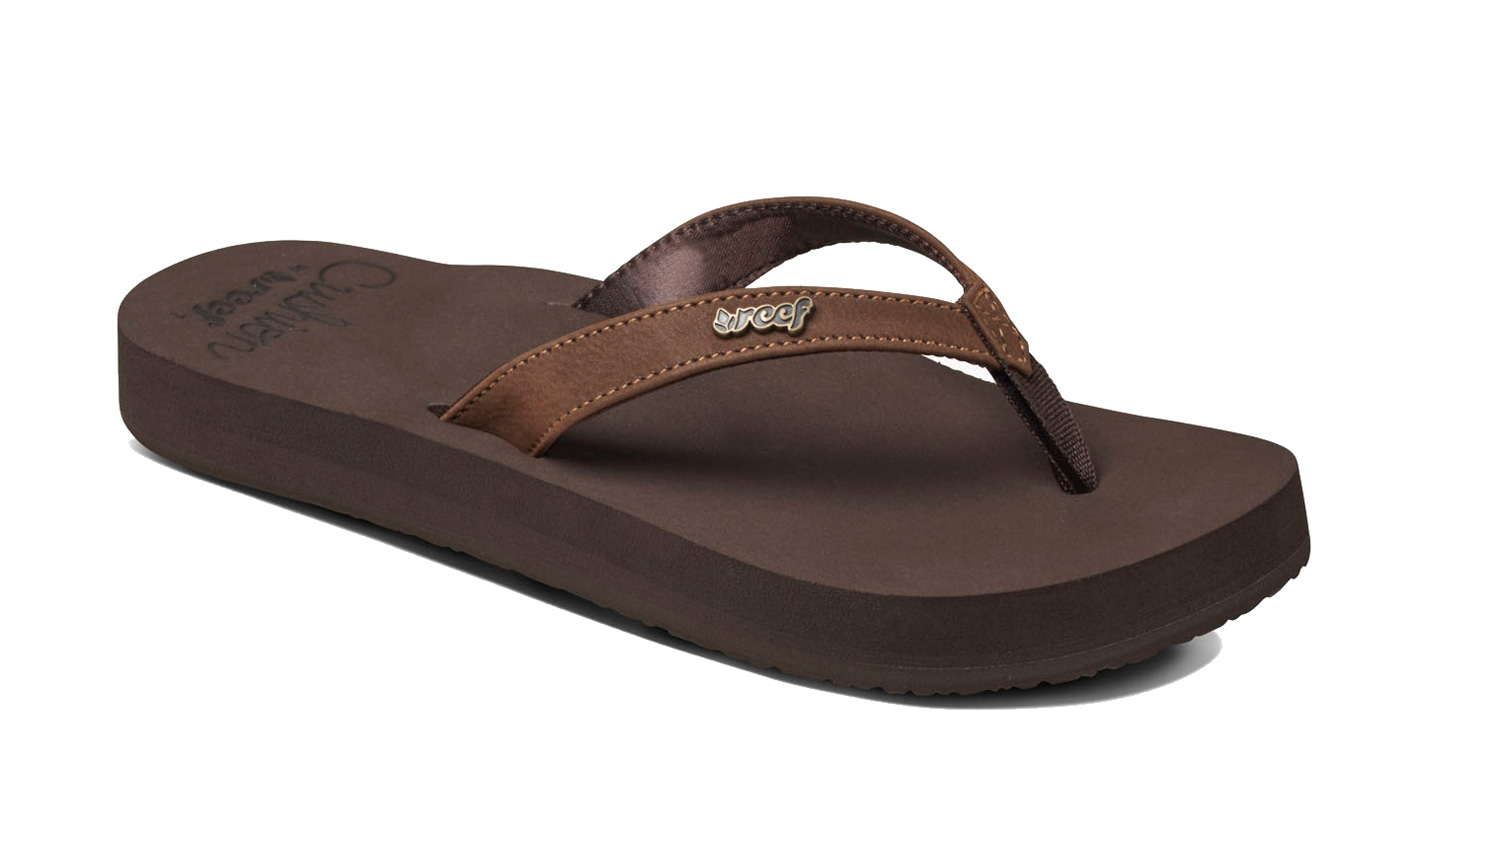 08611cb3767c8a Reef Womens Cushion Luna Flip Flop